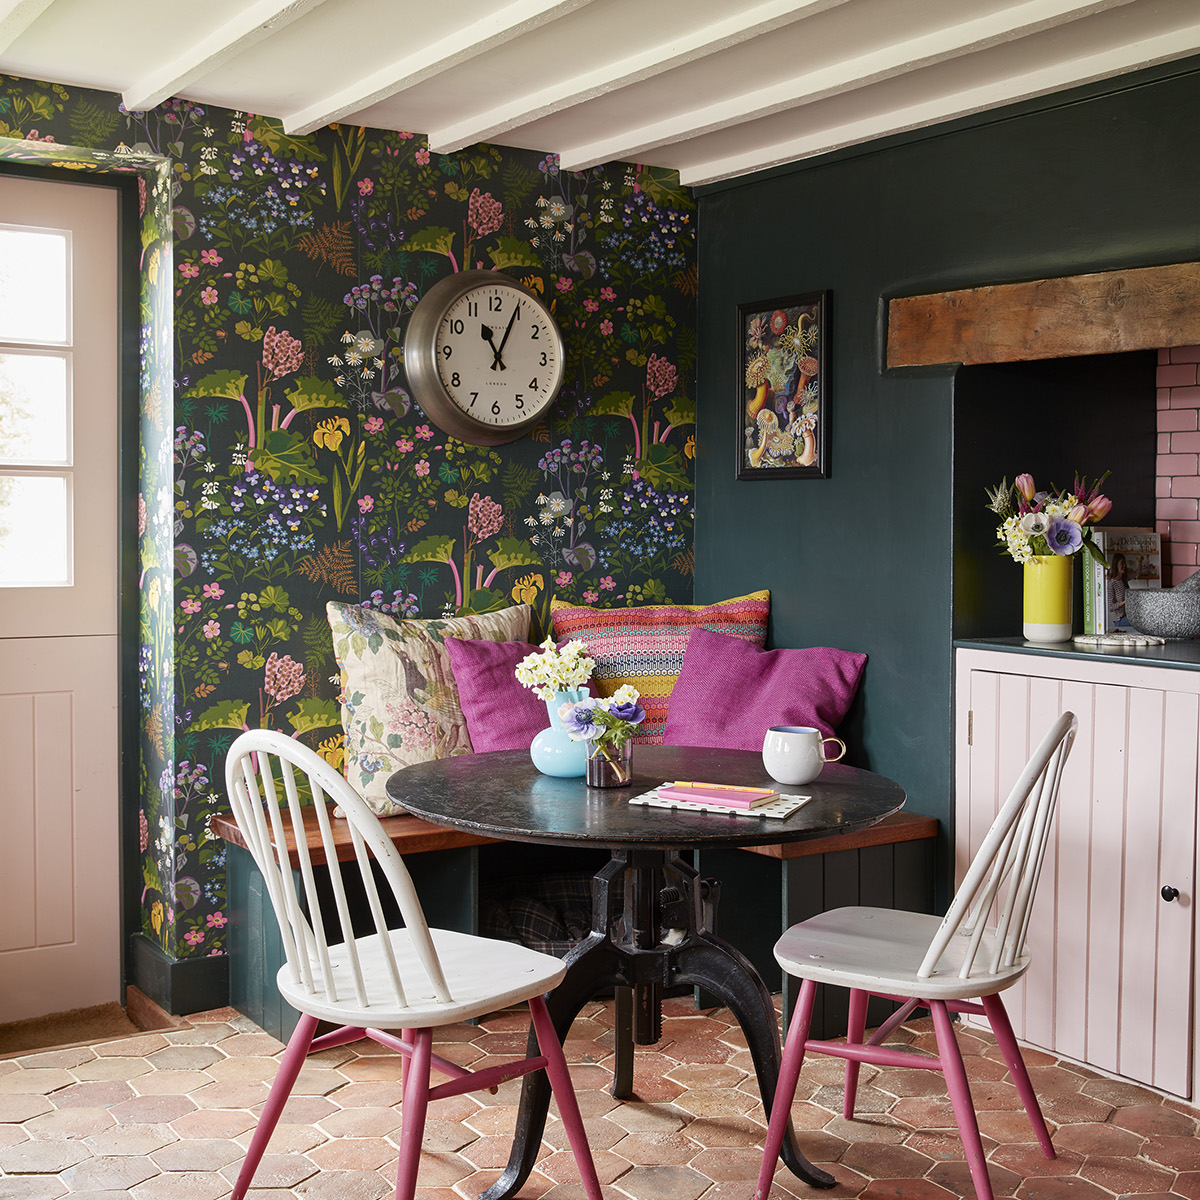 Green colourful botanical print wallpaper, dark green wall, small black round table and white and pink dining chairs. Sophie Robinson's kitchen